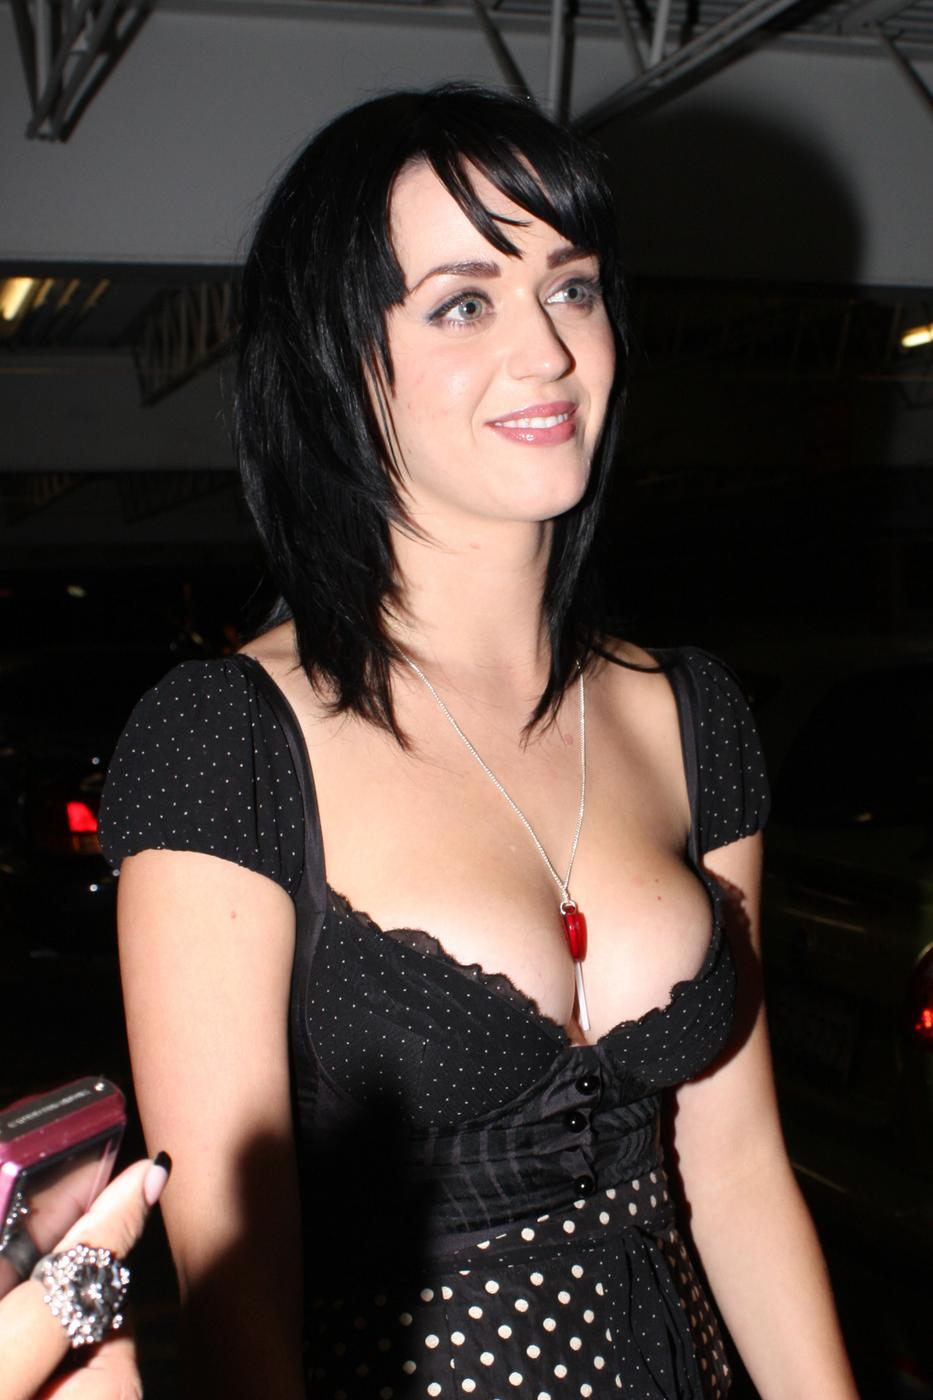 Sexy picture of katy perry